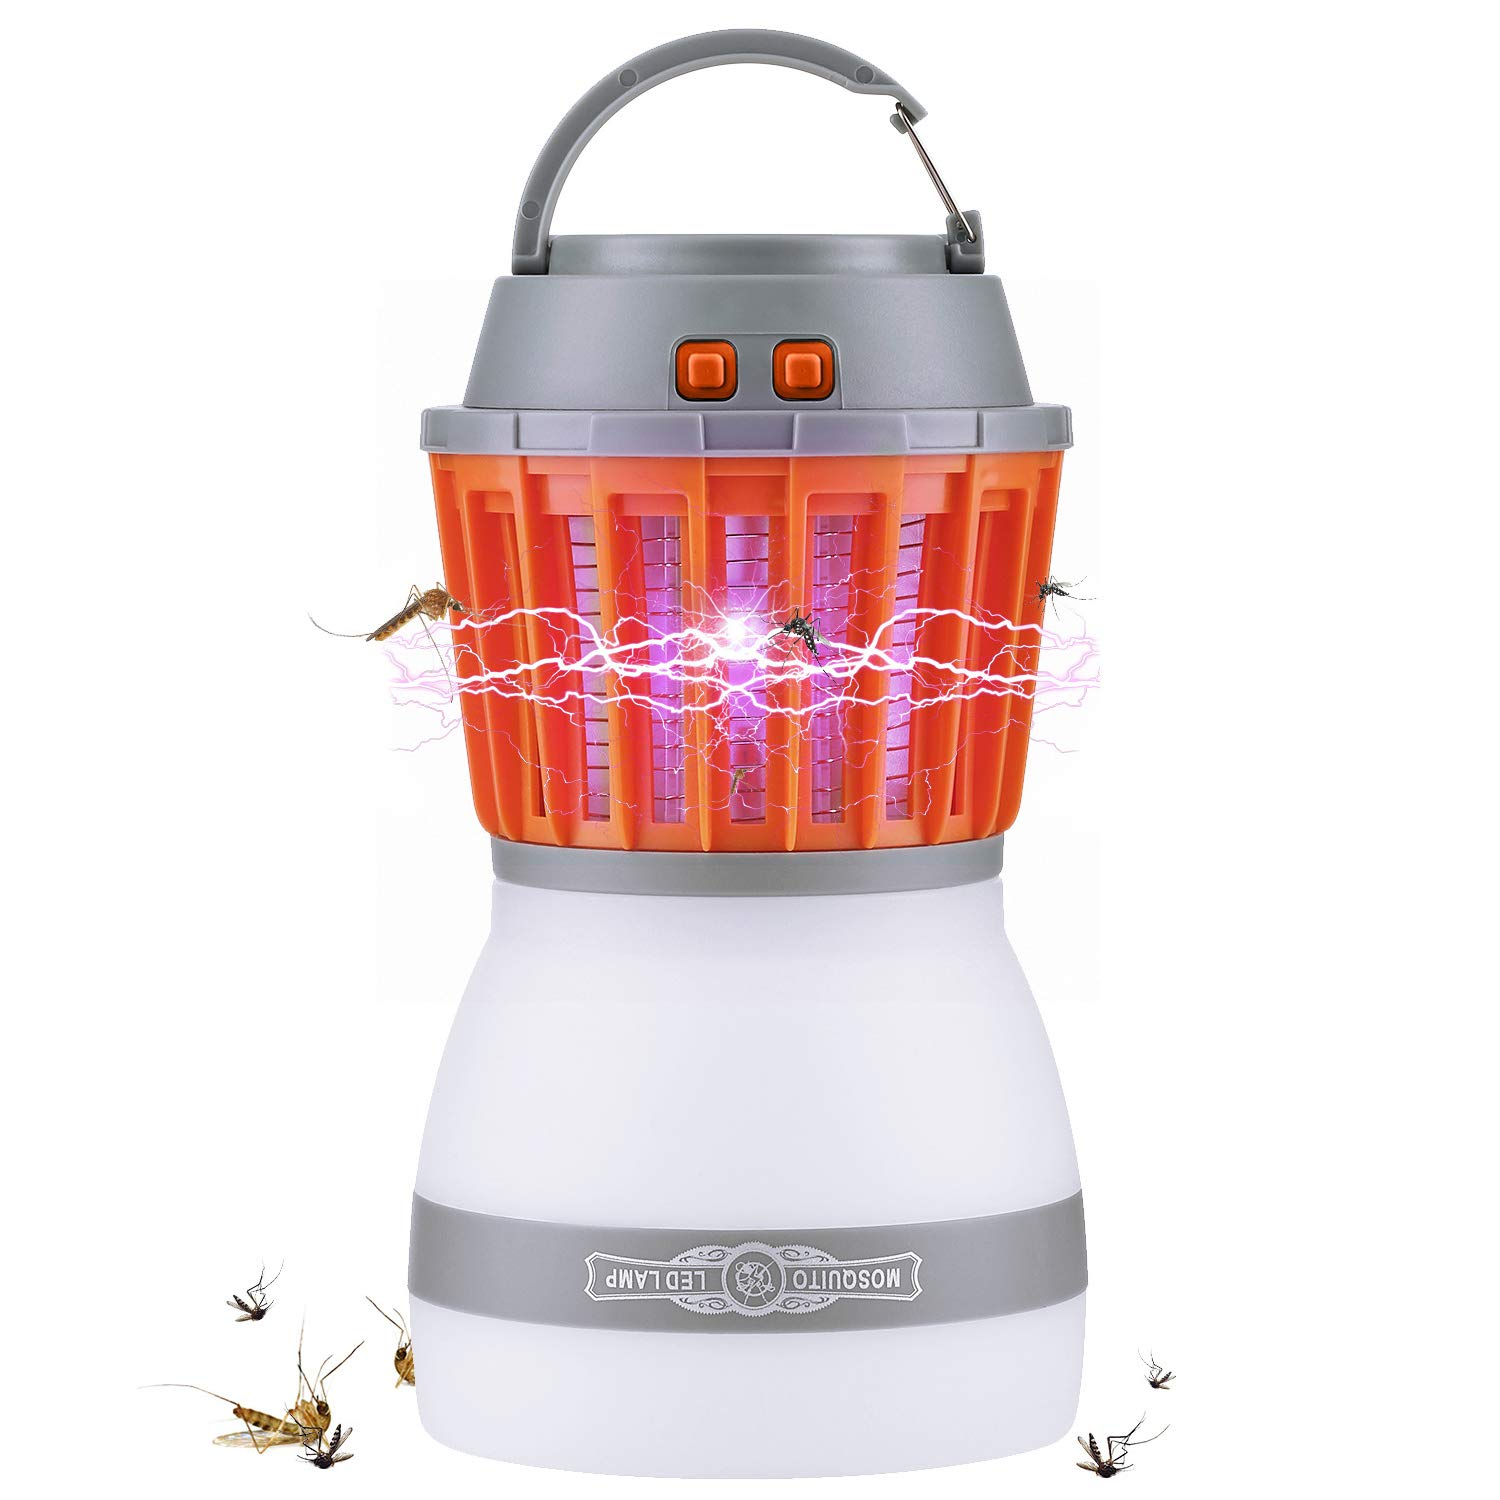 Fenvella 2018 Newest Bug 2 in 1 Fly Zapper with Camping Lantern,Waterproof,Portable Mosquito,Insect Killer for Indoor&Outdoor